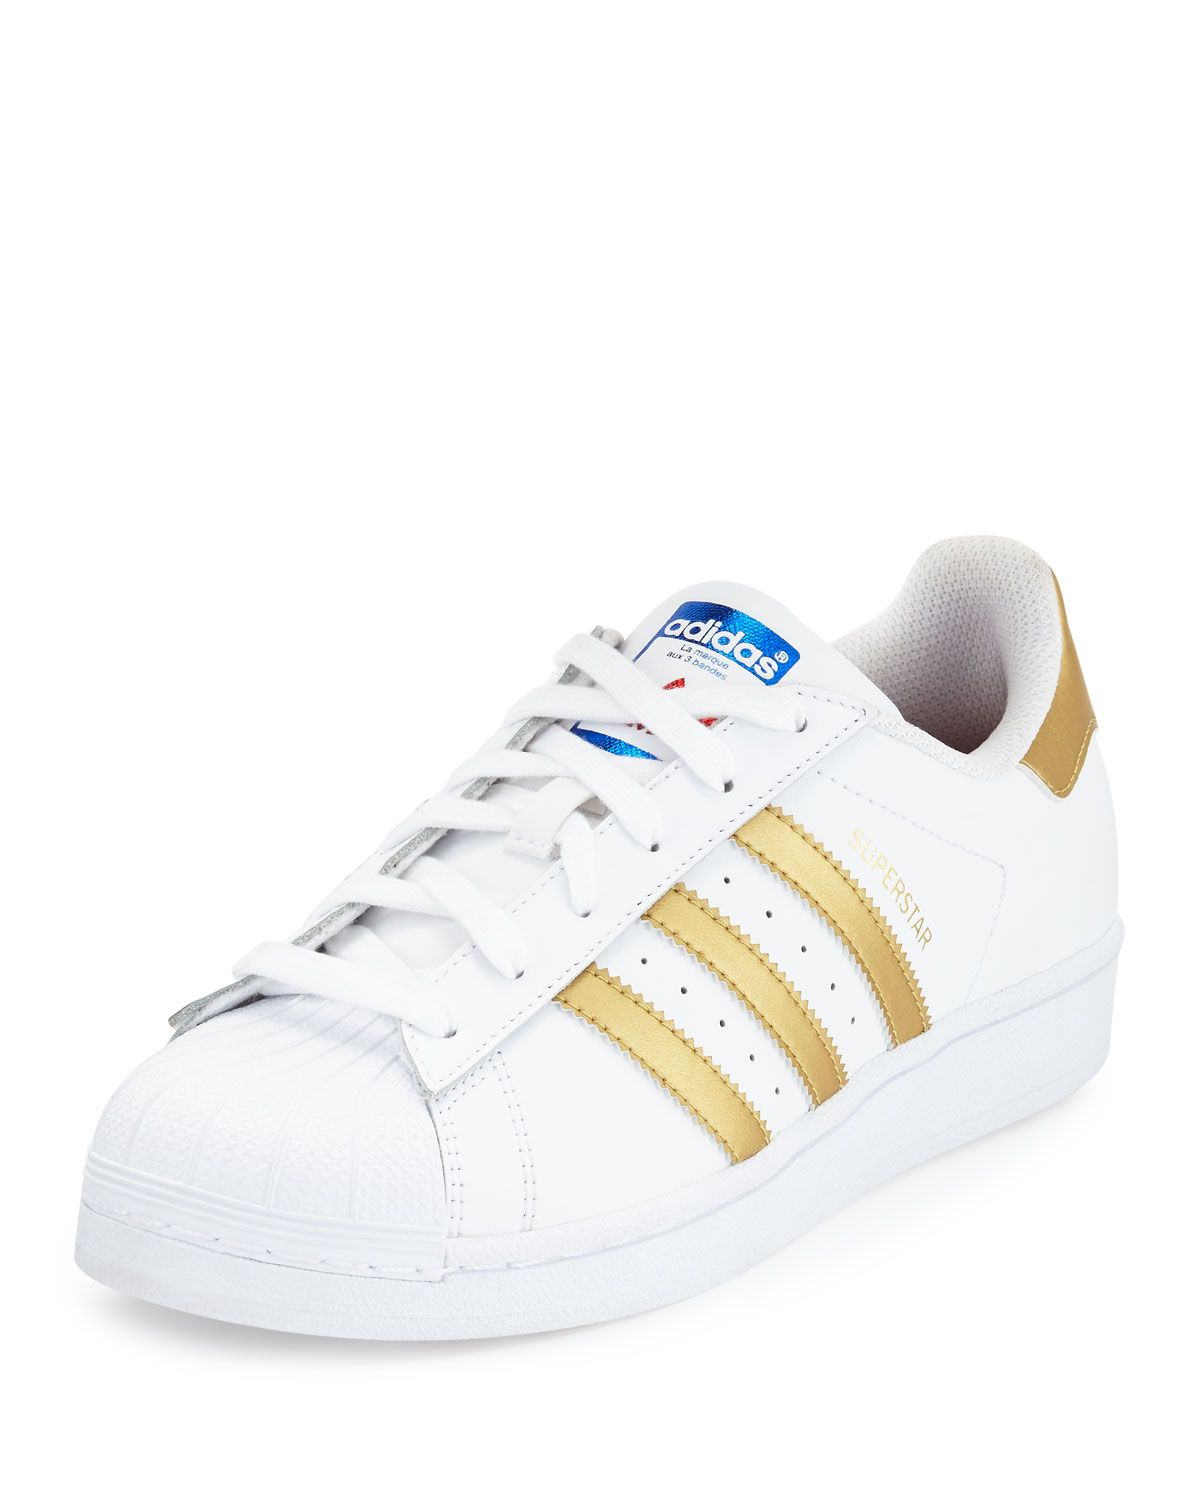 plus récent d6b44 9b7ea Superstar Original Fashion Sneaker White/Gold | In Her Shoes ...